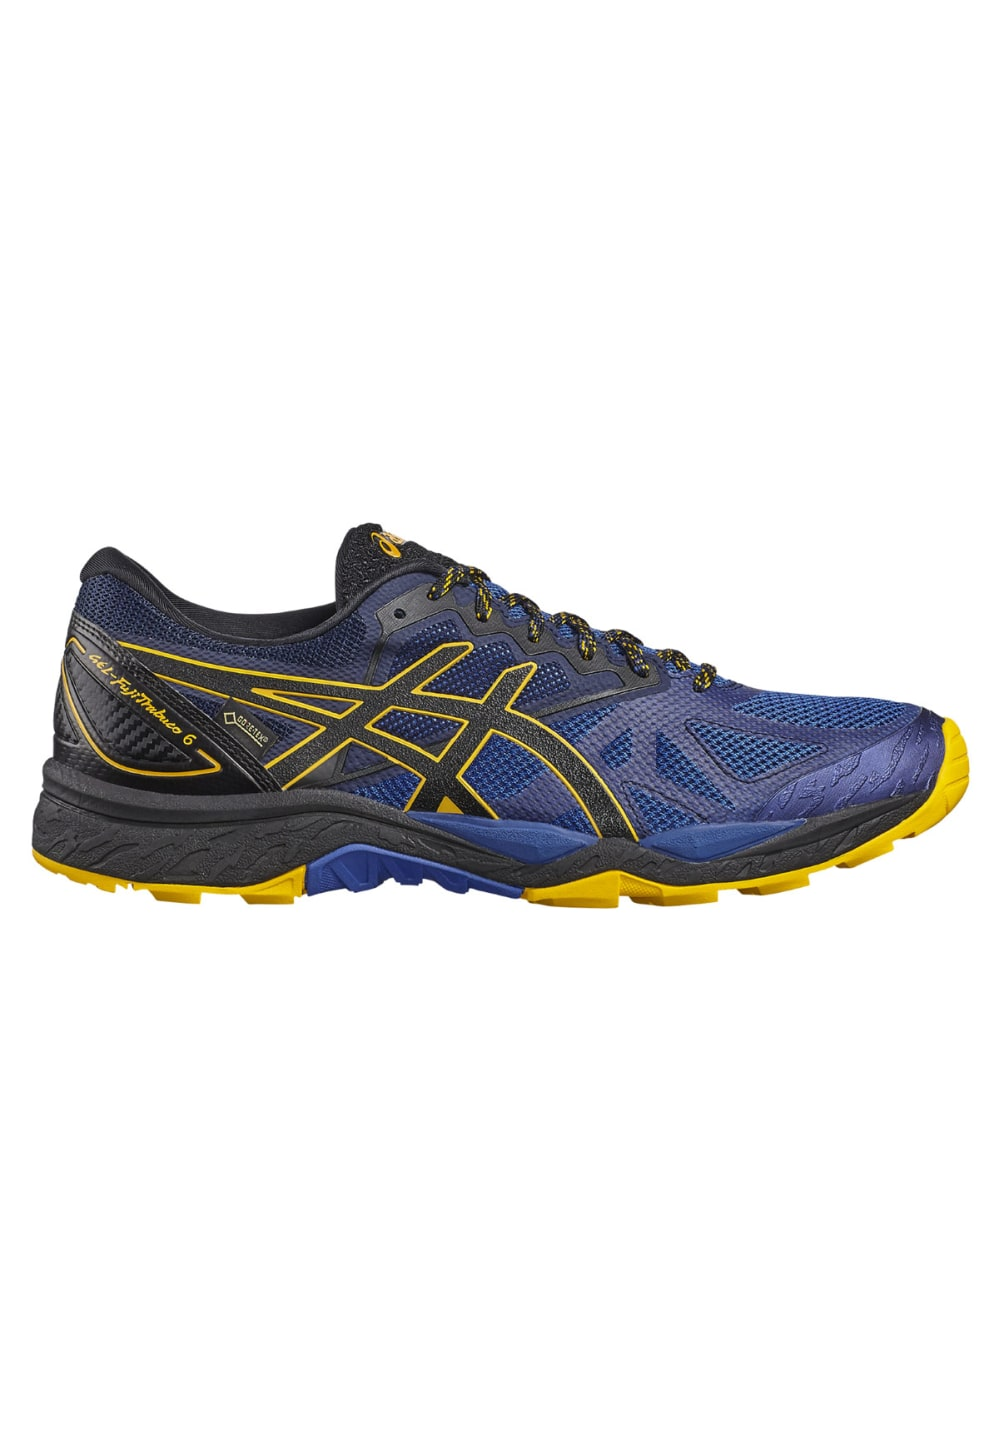 ASICS GEL Fujitrabuco 6 G TX Chaussures running pour Homme Bleu